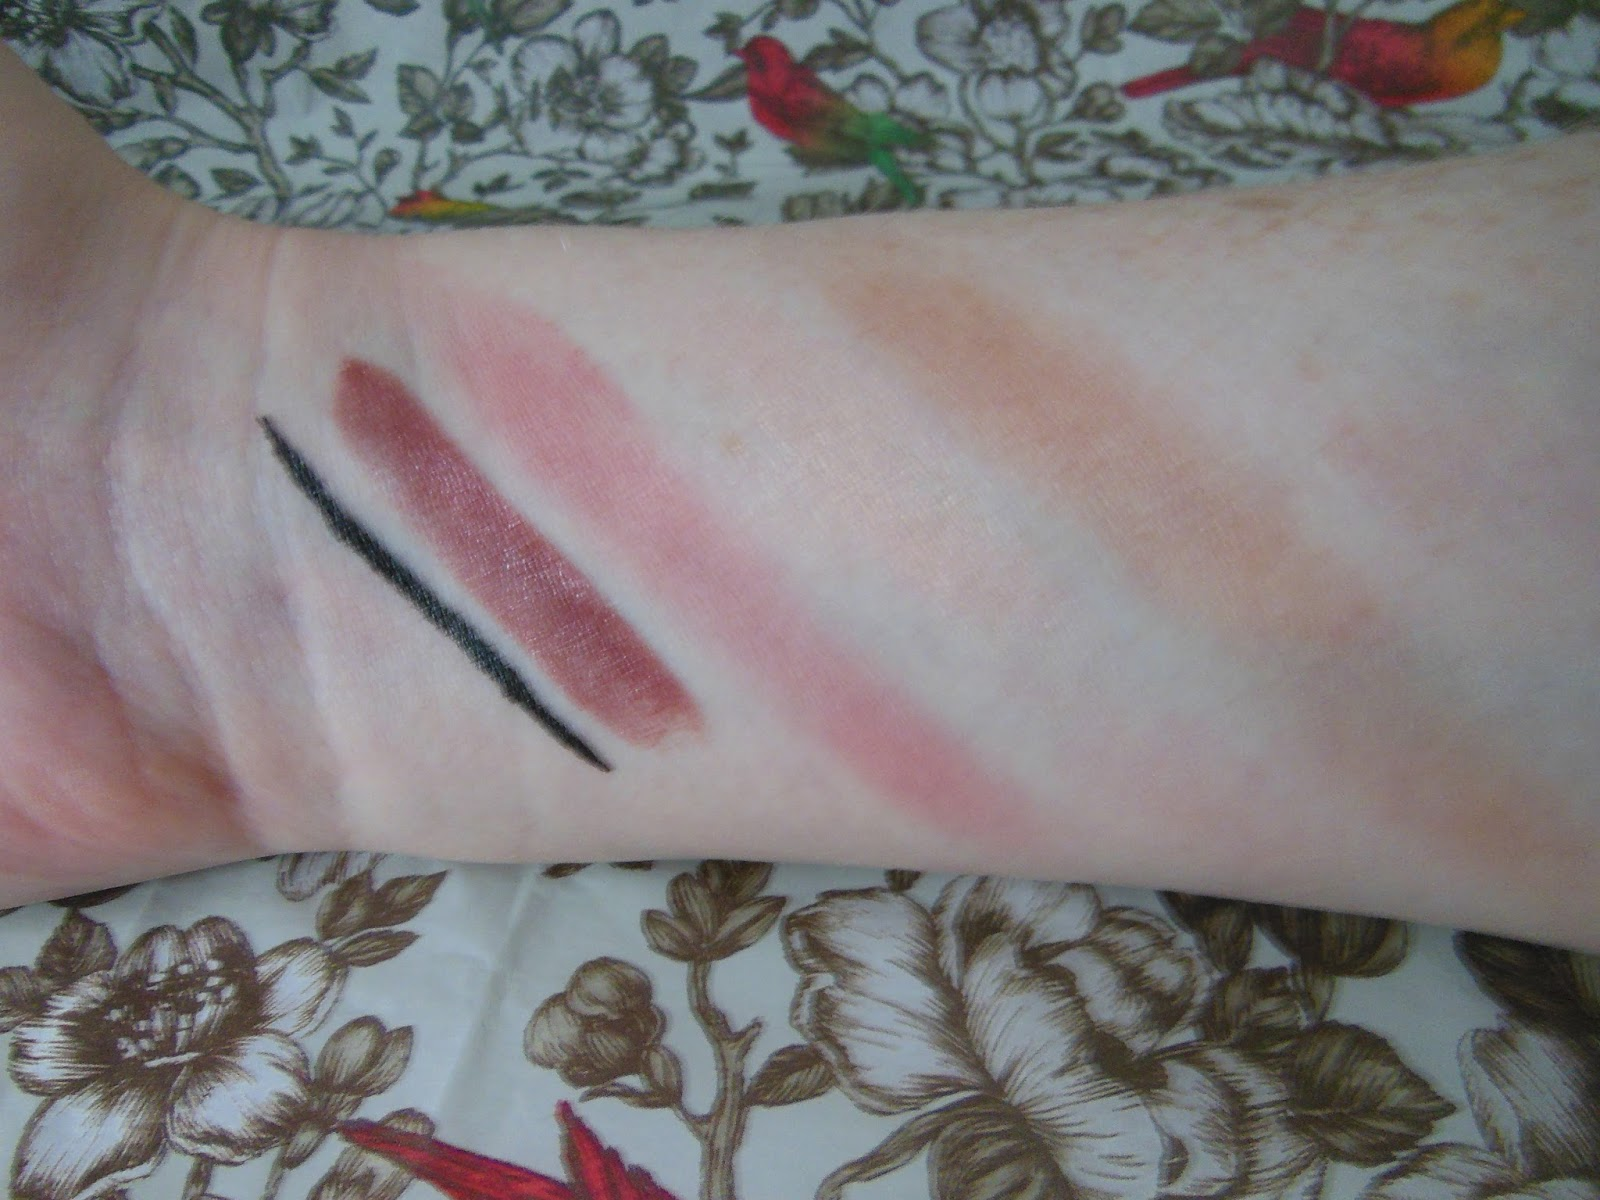 Pur Minerals Bare It All collection swatches